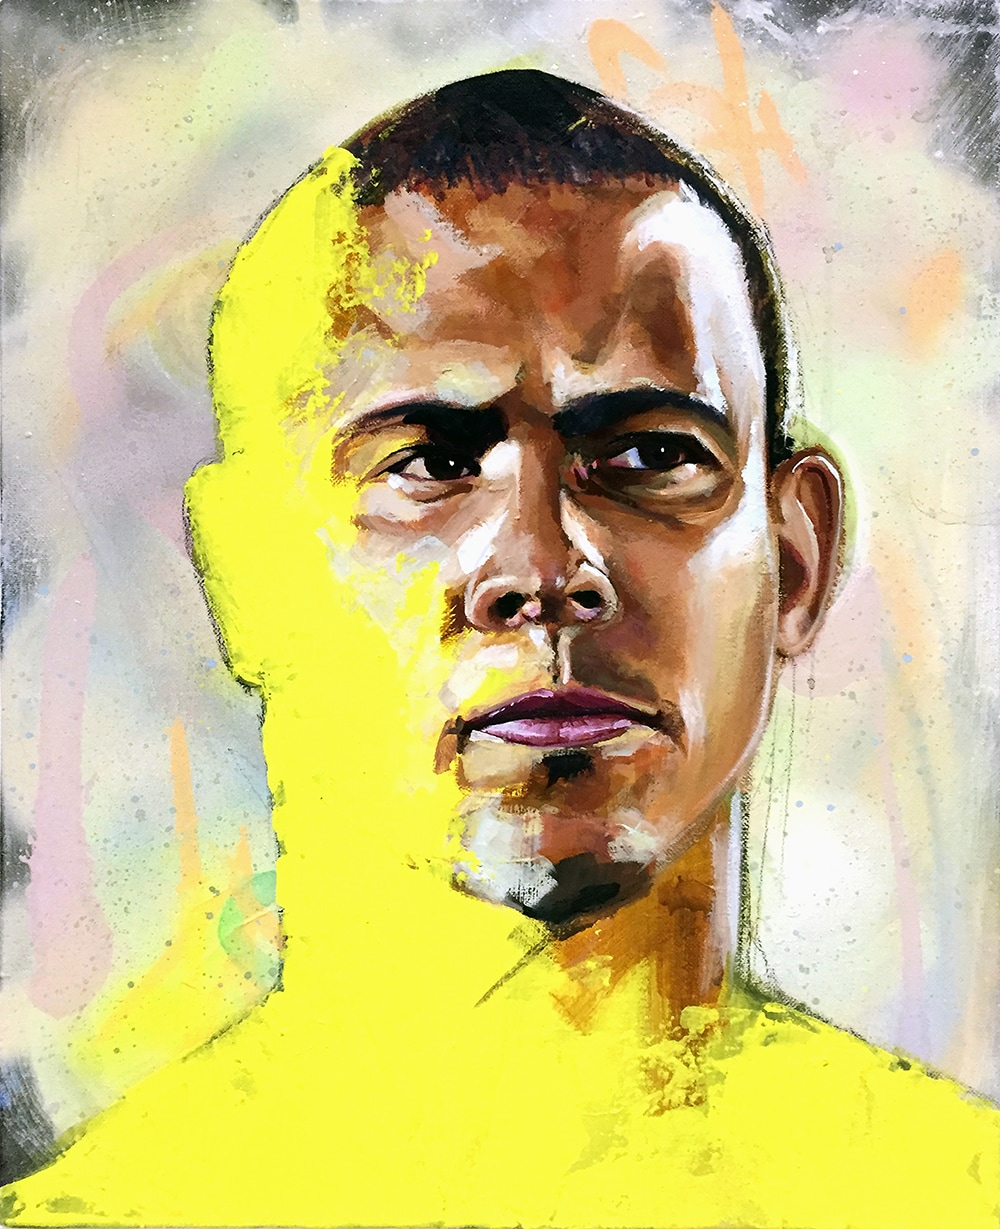 Ronaldo, Brazil, Barcelona, Real Madrid, Inter Milan, World Cup, Legend, Football, Soccer, Yellow, Futebol, Painting, Portrait, Canvas